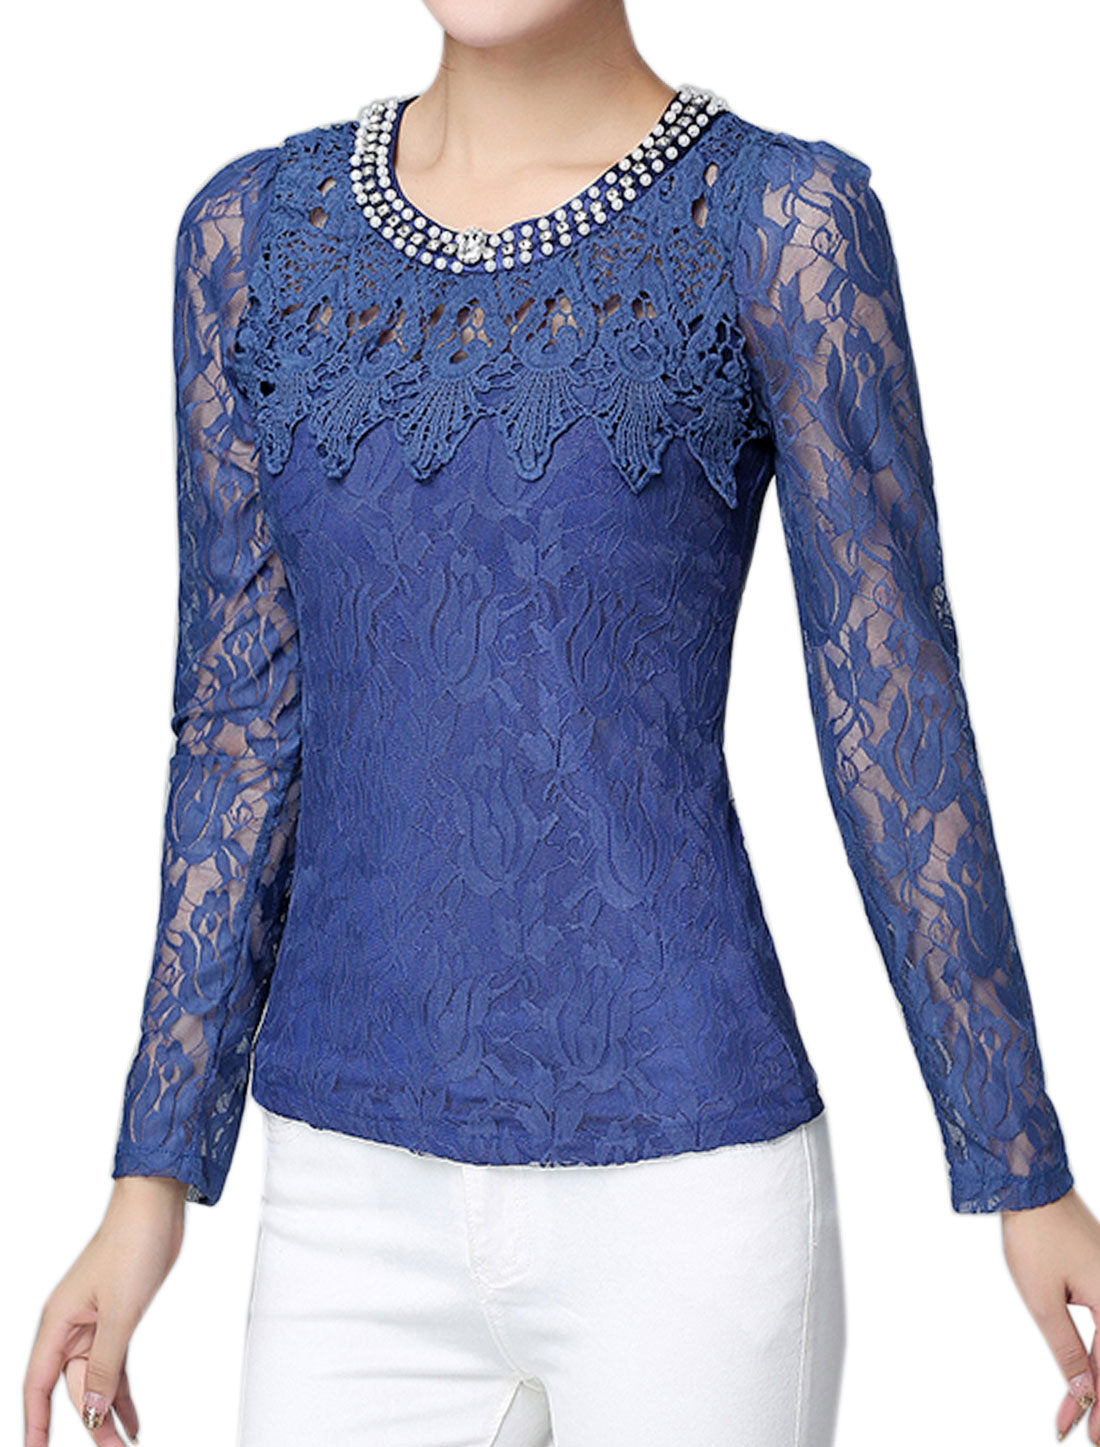 Women Beaded Rhinestone Slim Fit Floral Lace Top Blue M